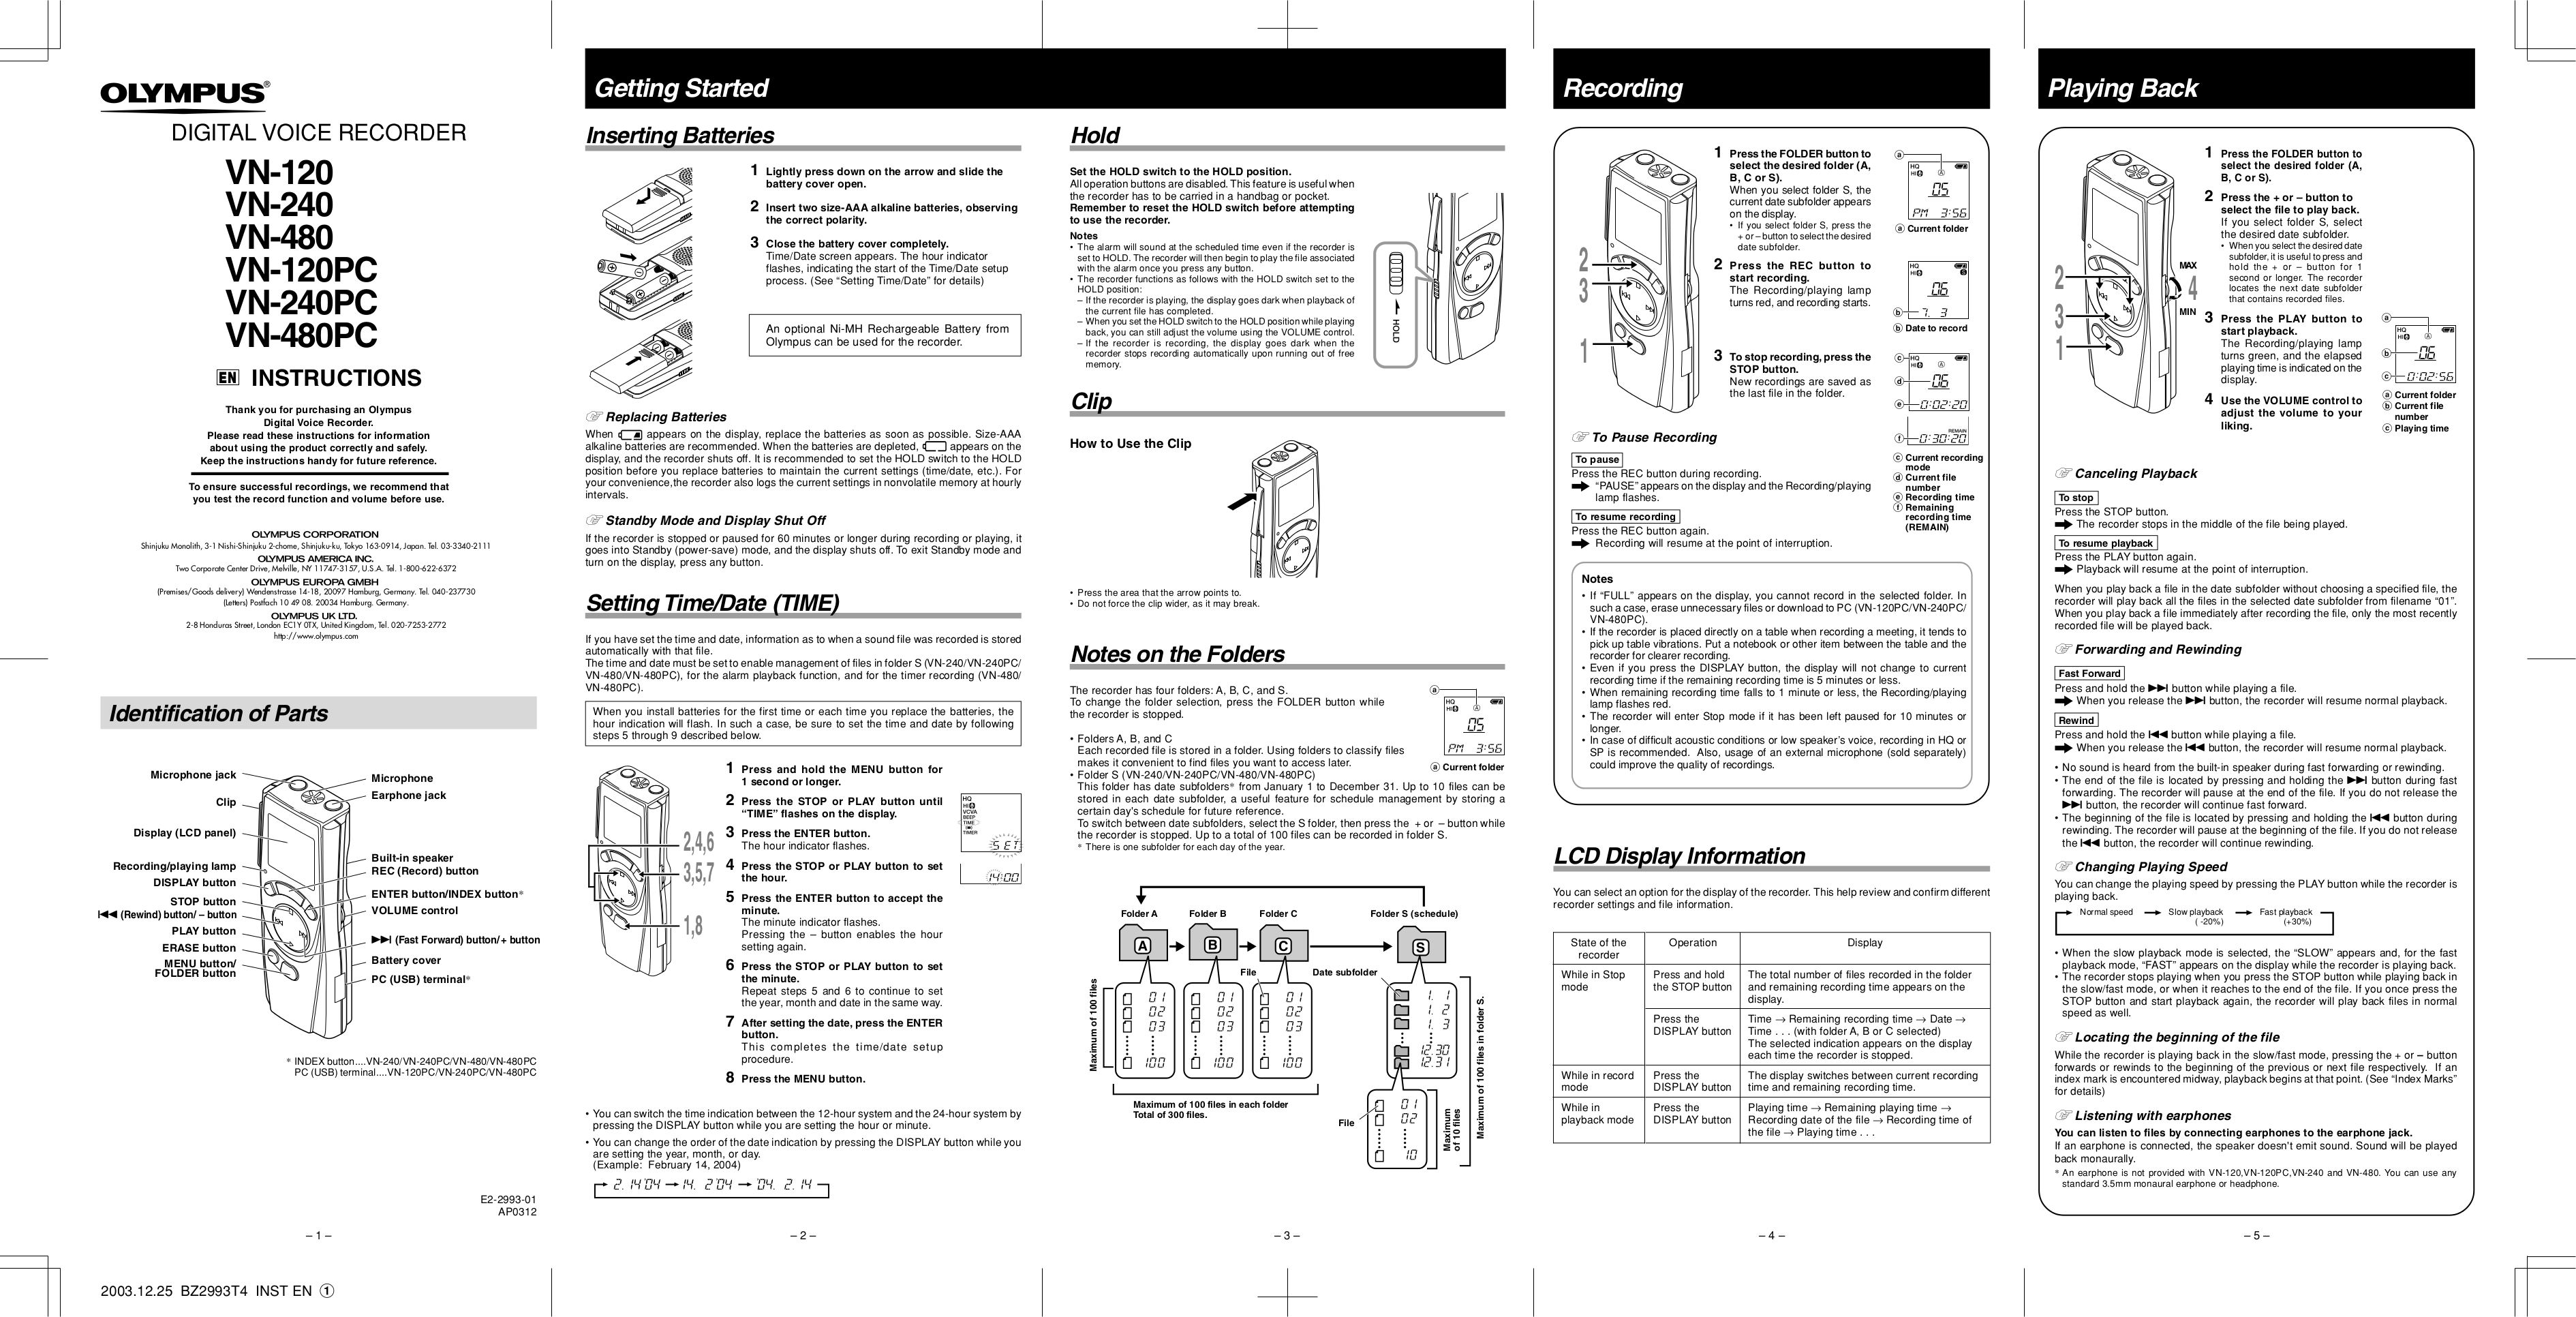 olympus voice recorder instructions